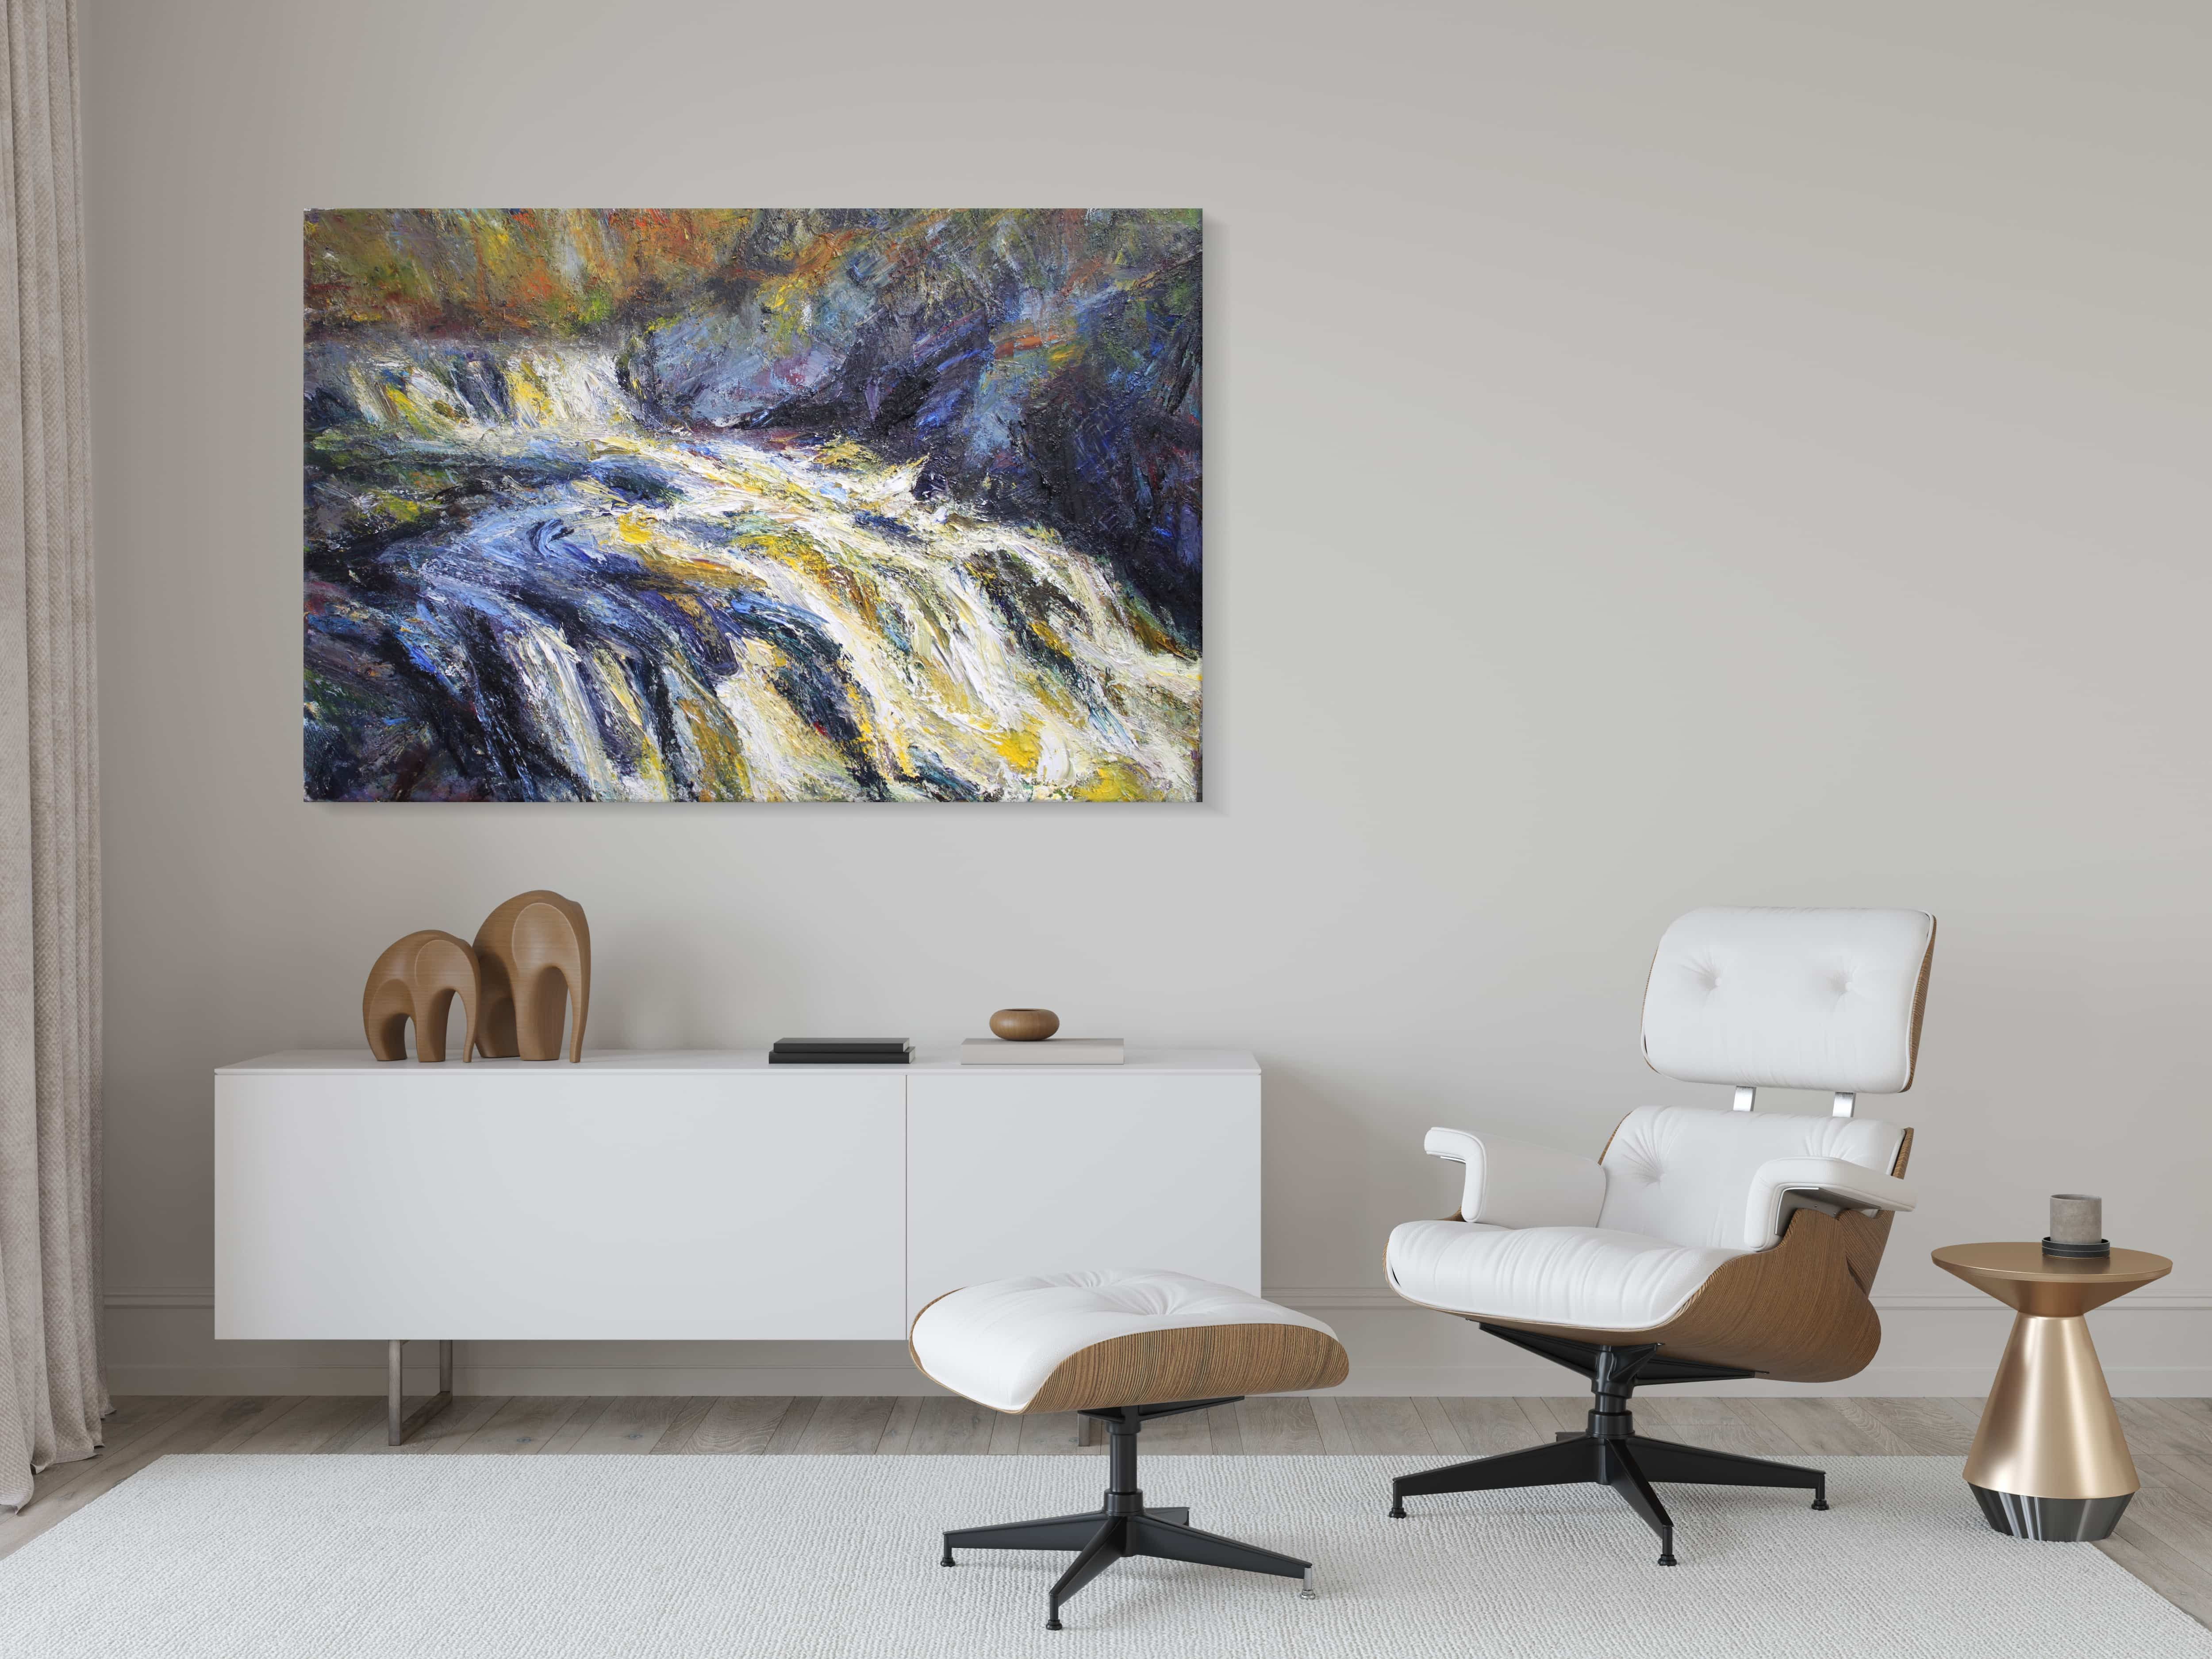 Swollen river, Black water,Jonathan Shearer,Contemporary painting, detail 1